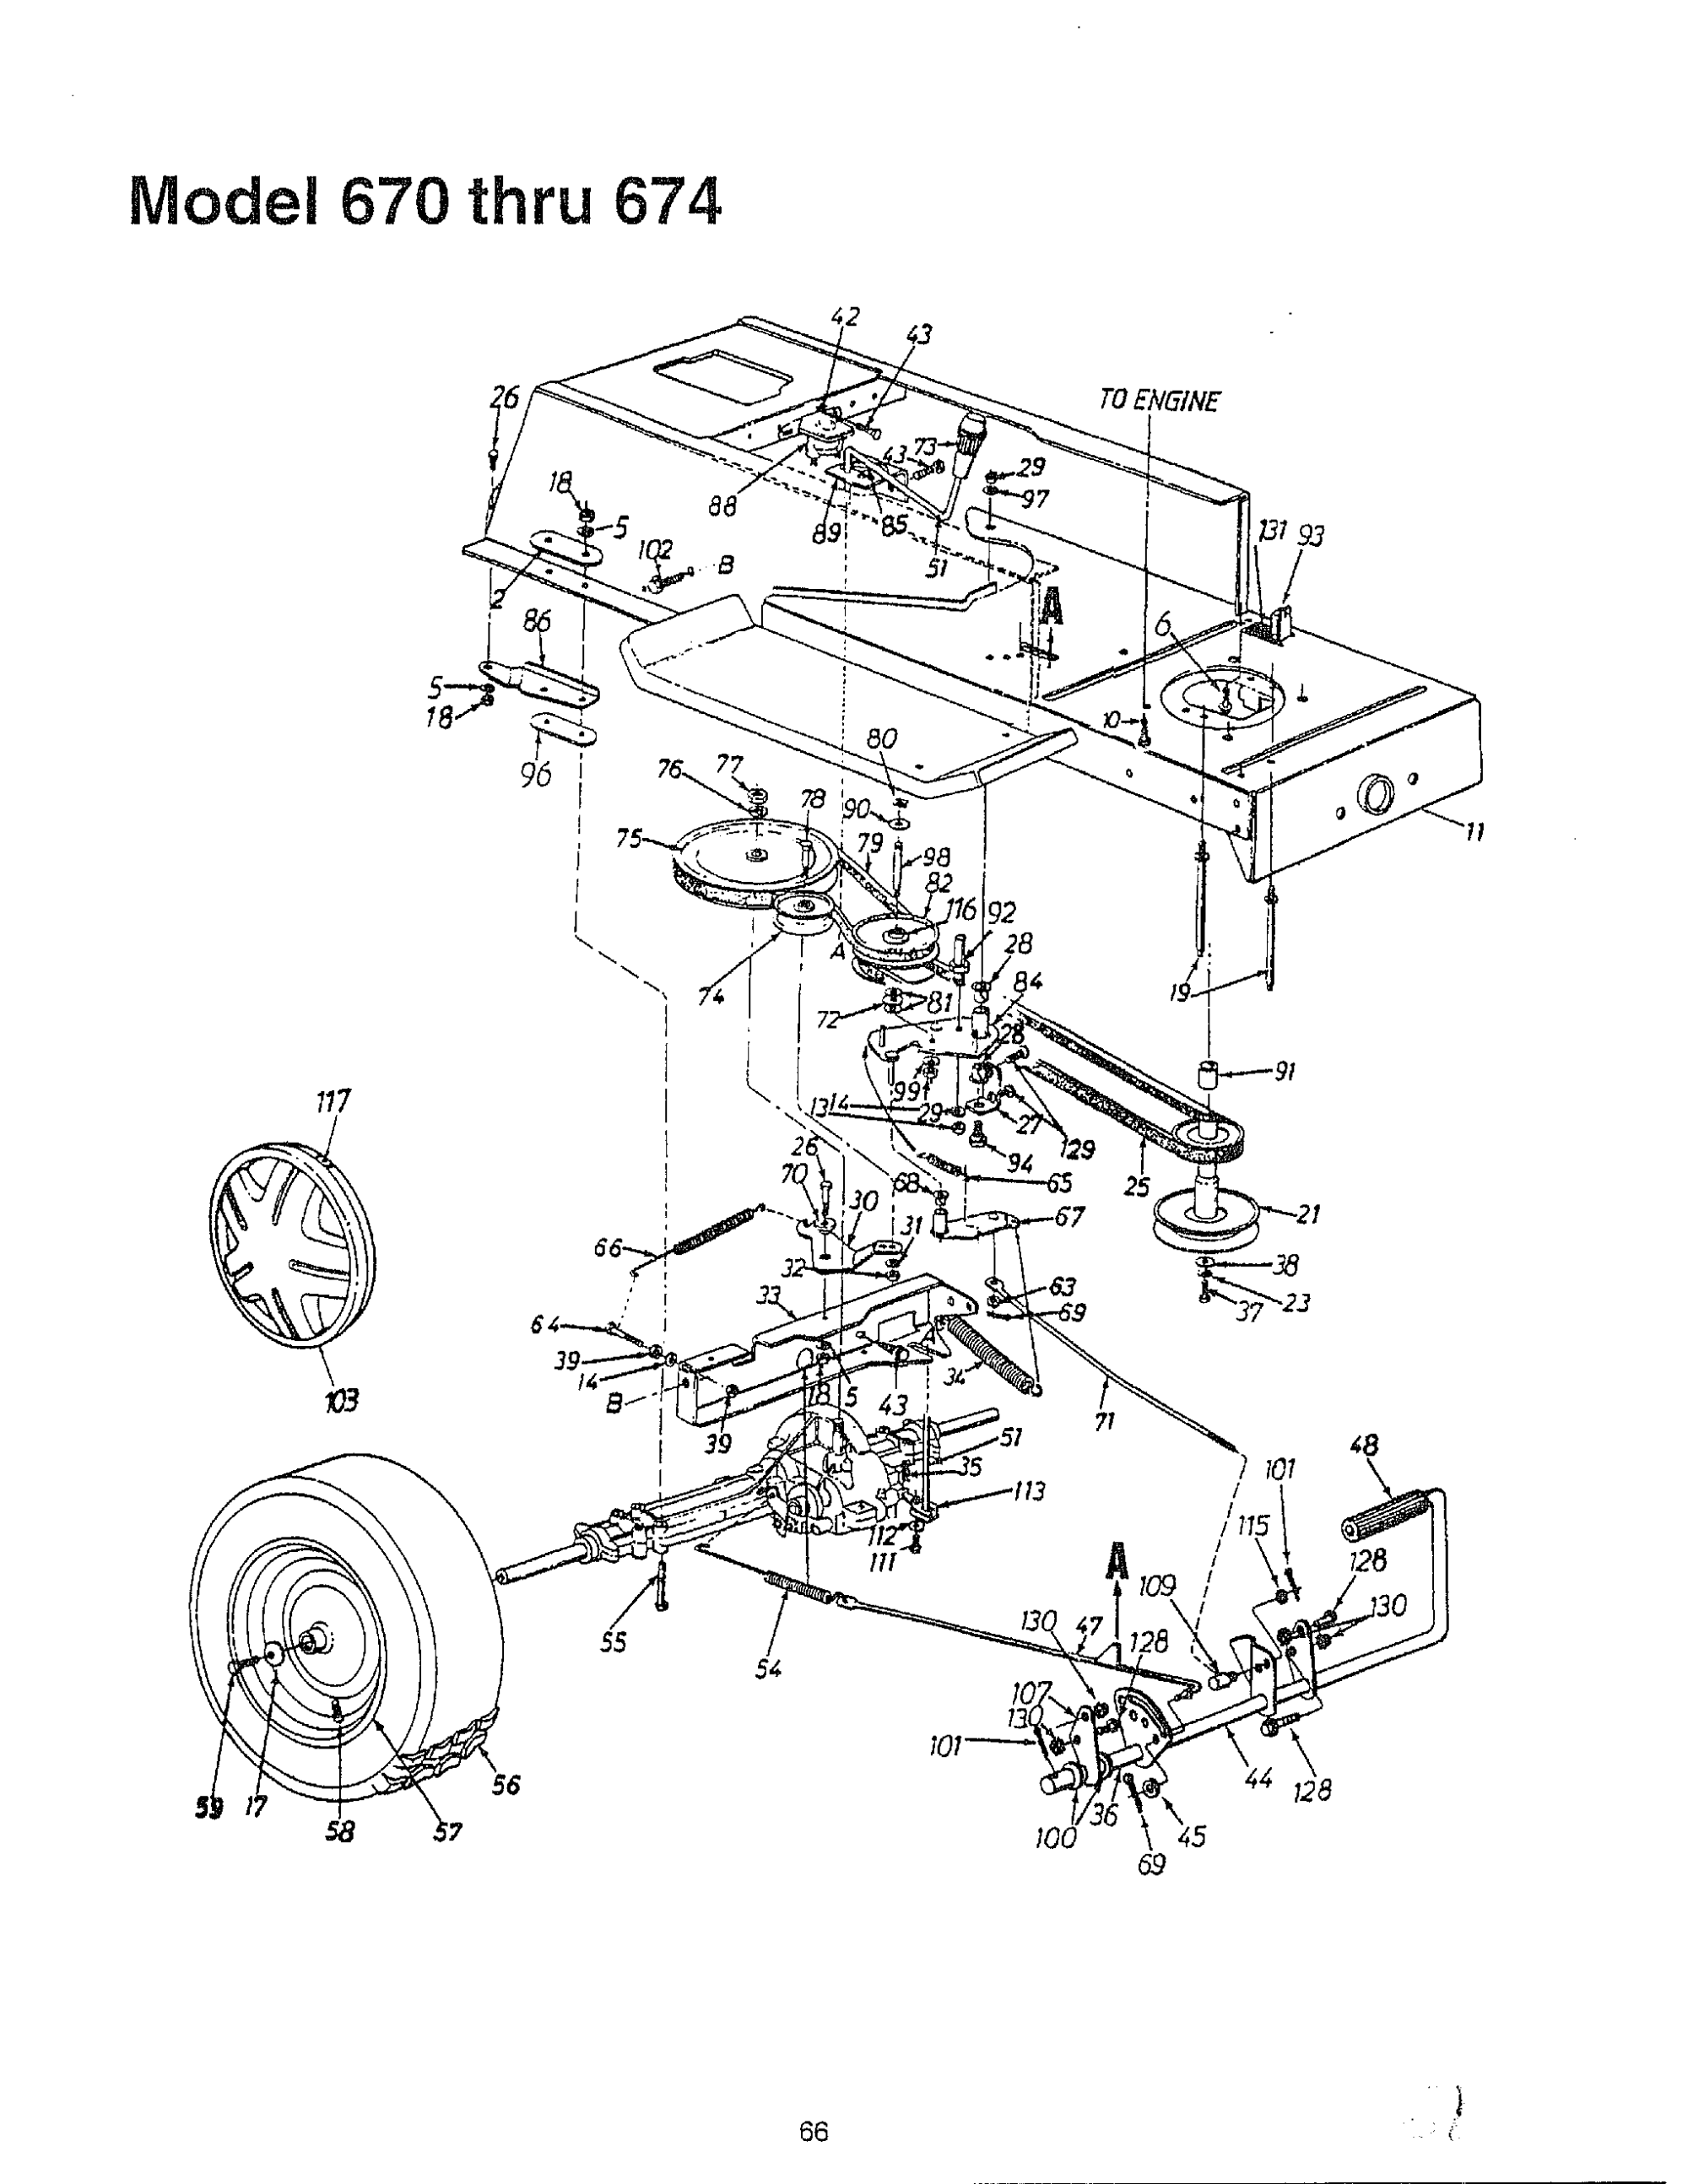 hight resolution of mtd lawn mower parts diagram wiring diagram mega mtd lawn mower diagram looking for mtd model